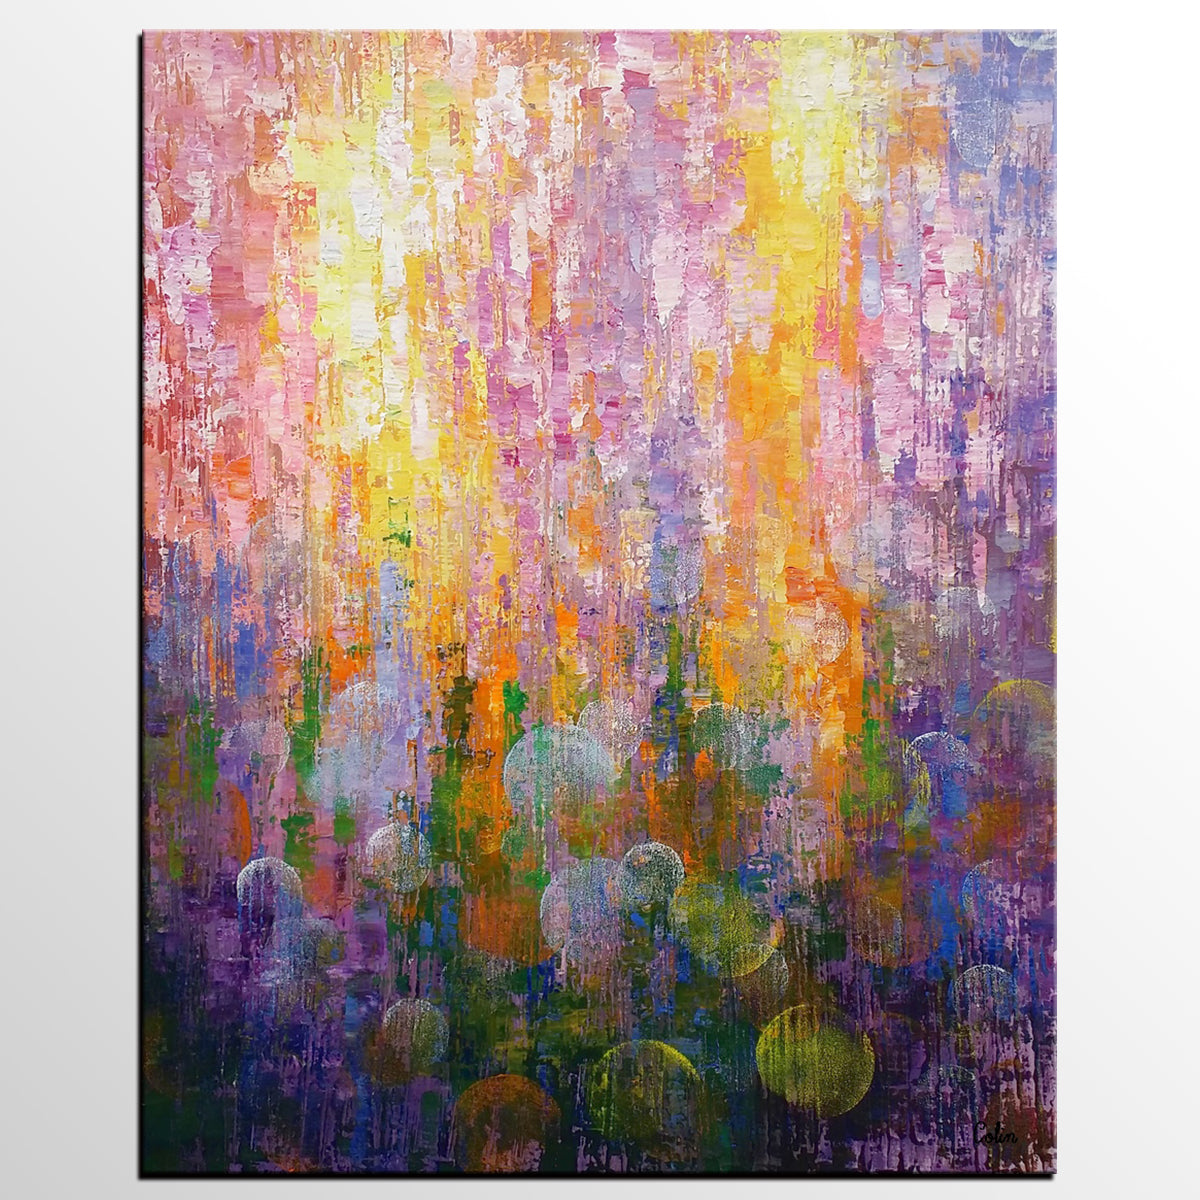 Living Room Art Decor, Large Wall Art, Abstract Painting, Large Art, Canvas Art, Wall Art, Original Artwork, Canvas Painting, Modern Art, Wall Decor 183